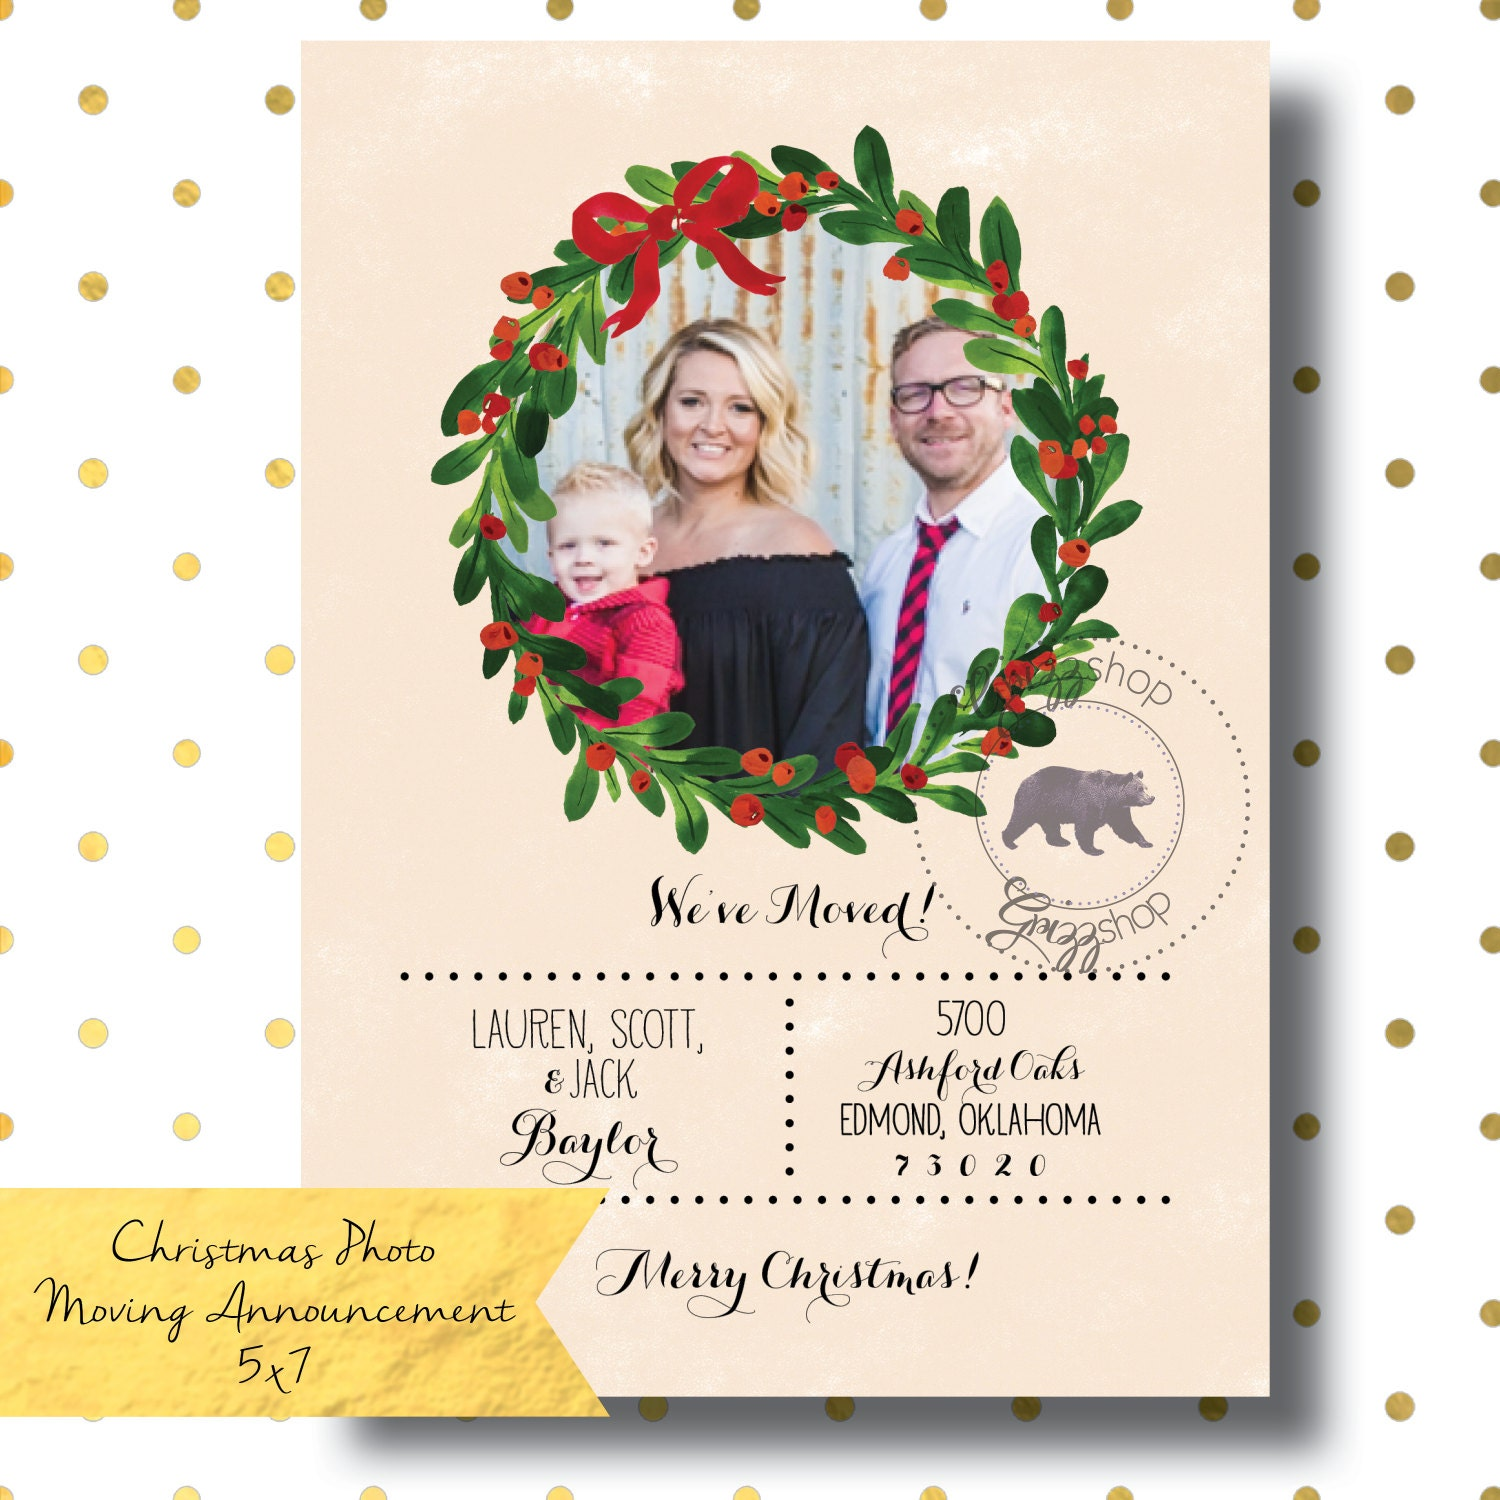 Christmas Photo Moving Announcement   Etsy